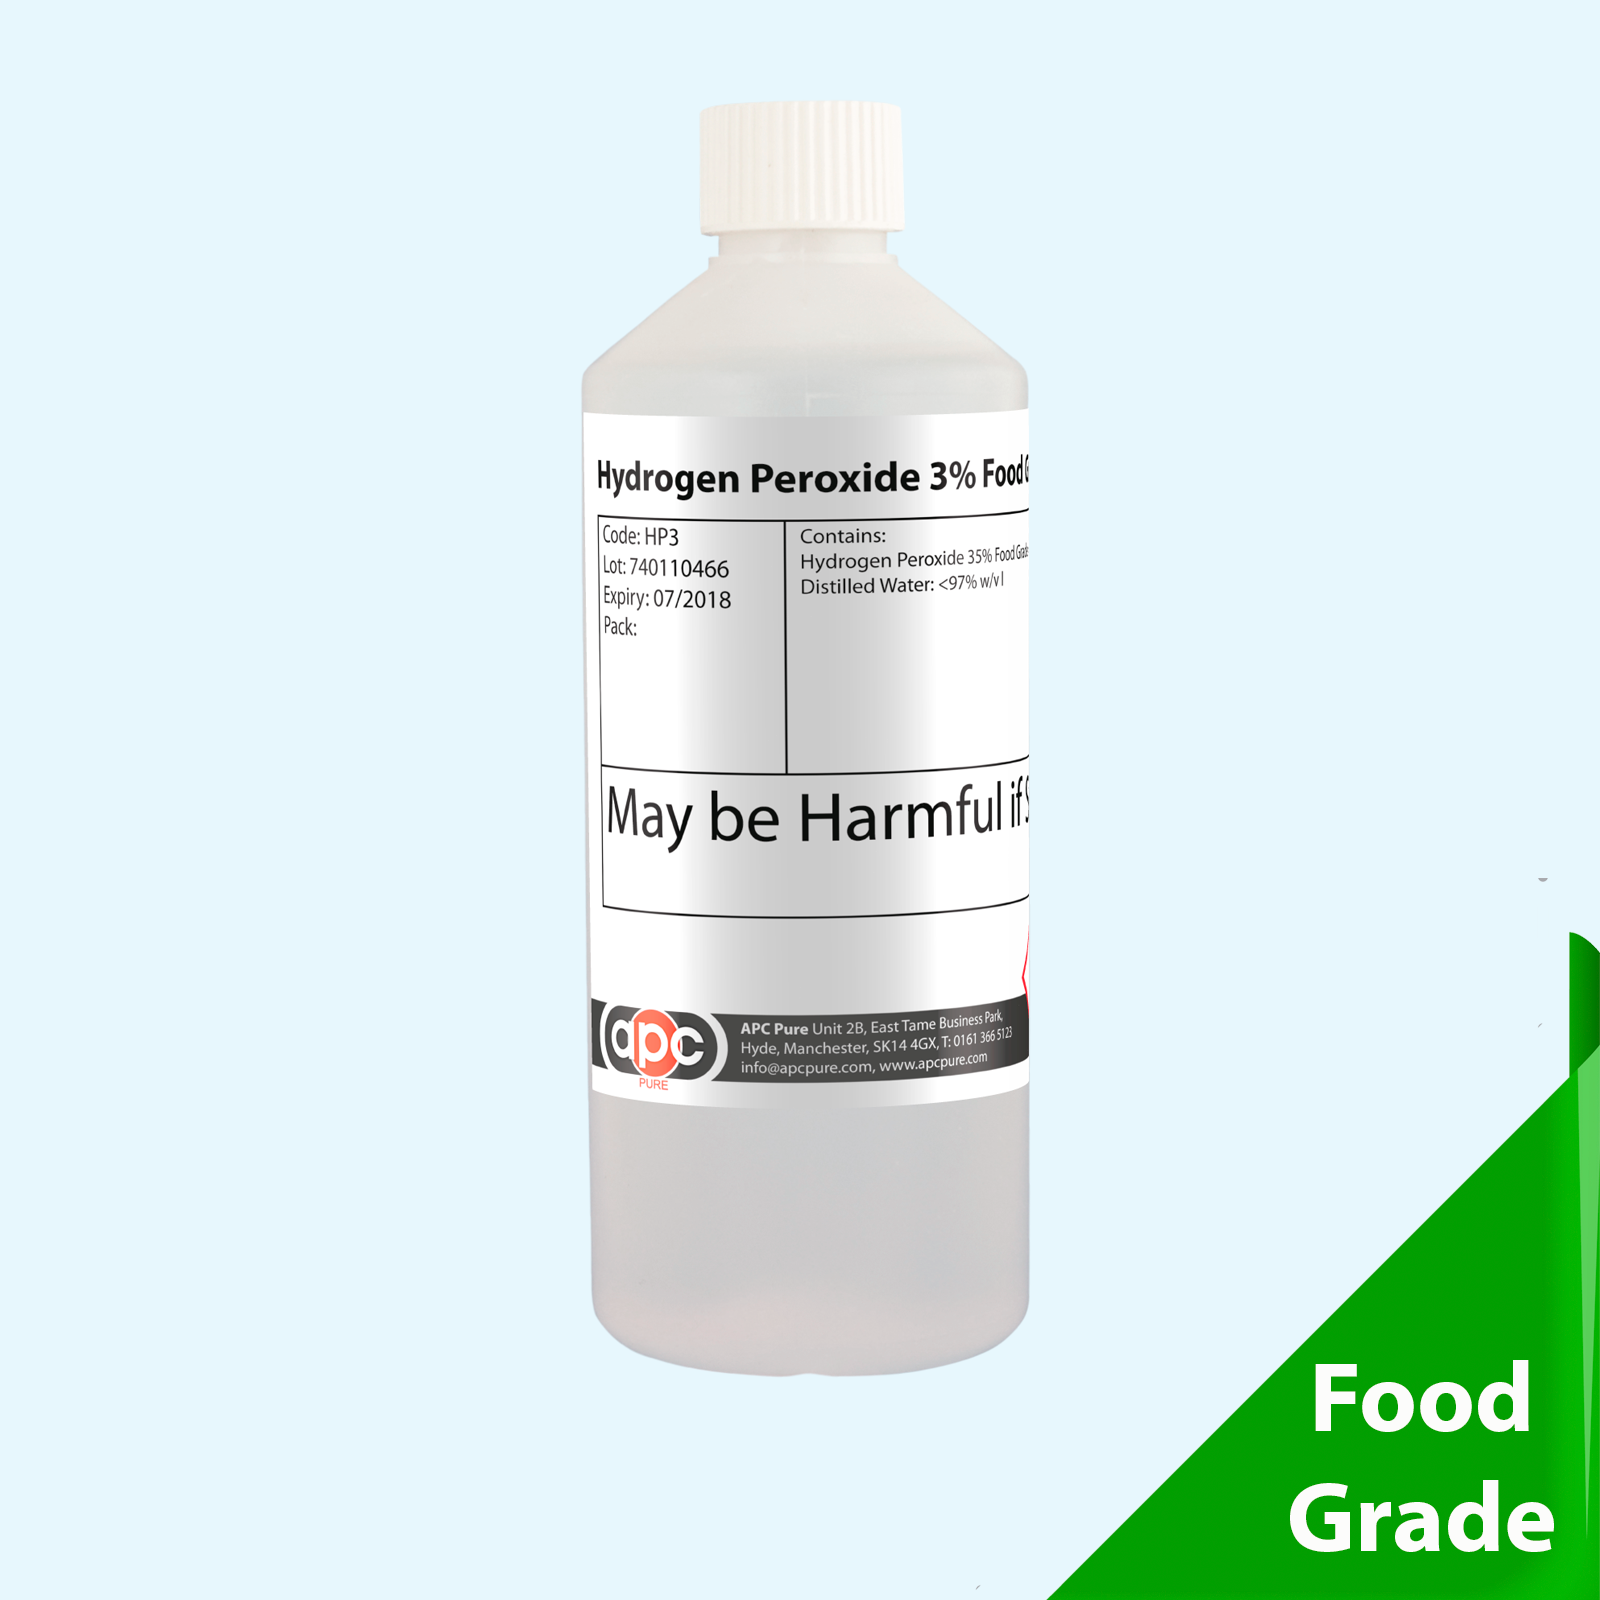 hydrogen peroxide thesis papers Decomposing hydrogen peroxide essay the effect of enzymes on hydrogen peroxide decomposition essay peroxides and their effects on plants essays.